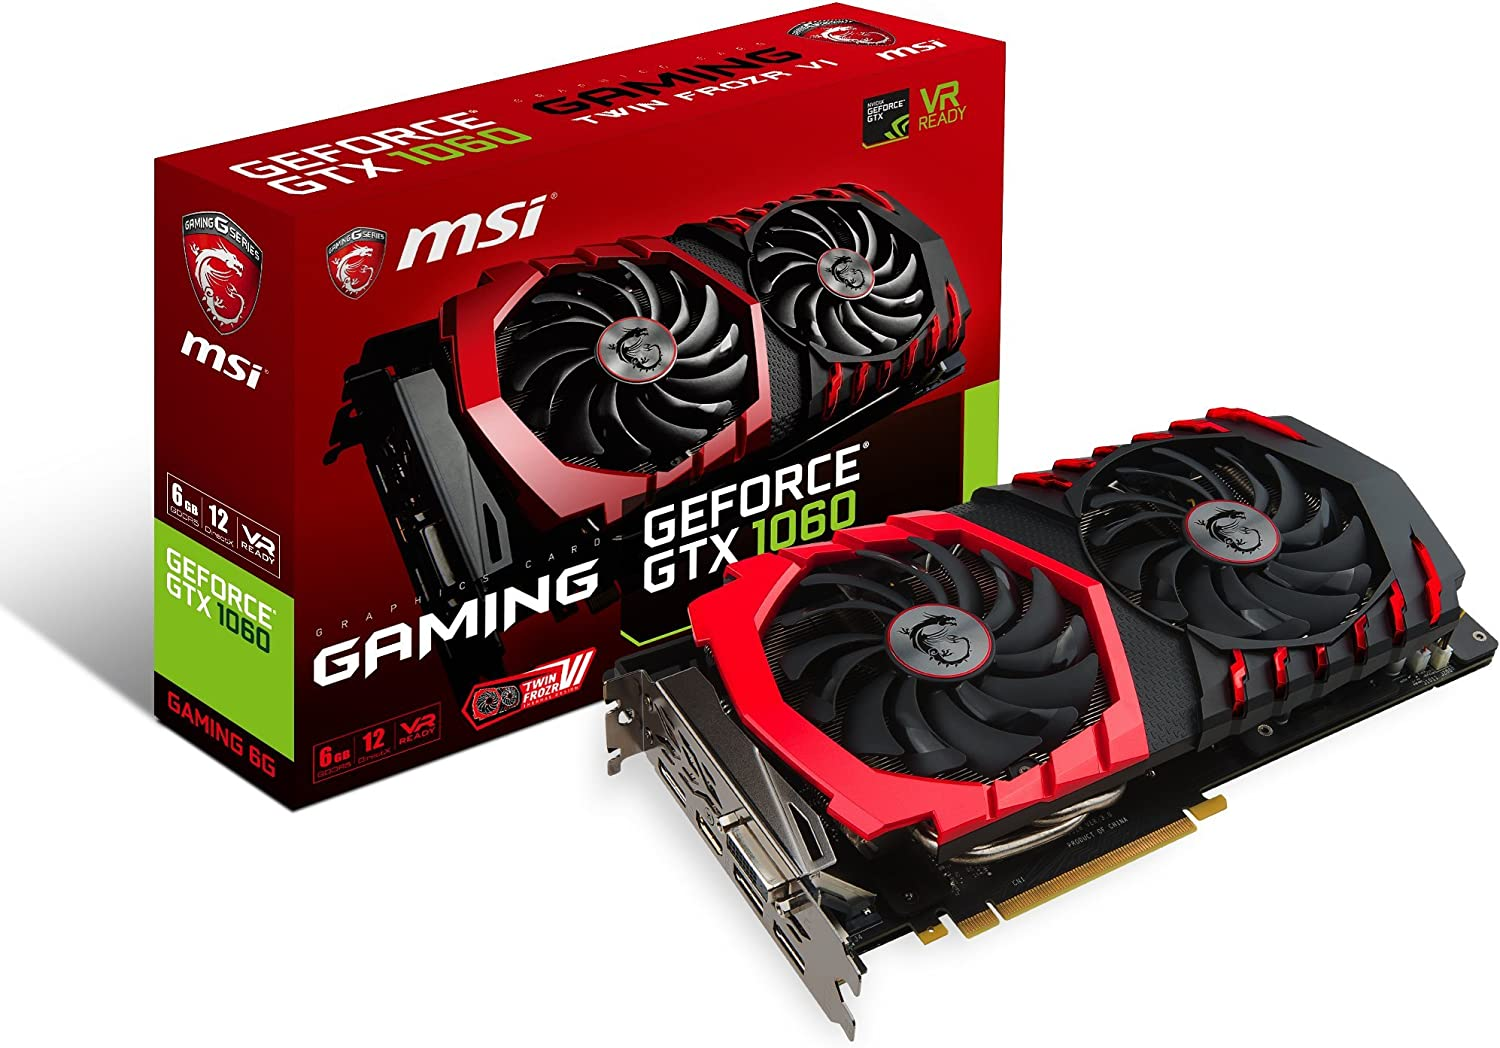 MSI GAMING GeForce GTX 1060 6GB GDRR5 192-bit HDCP Support DirectX 12 Dual TORX 2.0 Fan VR Ready Graphics Card (GTX 1060 GAMING 6G)